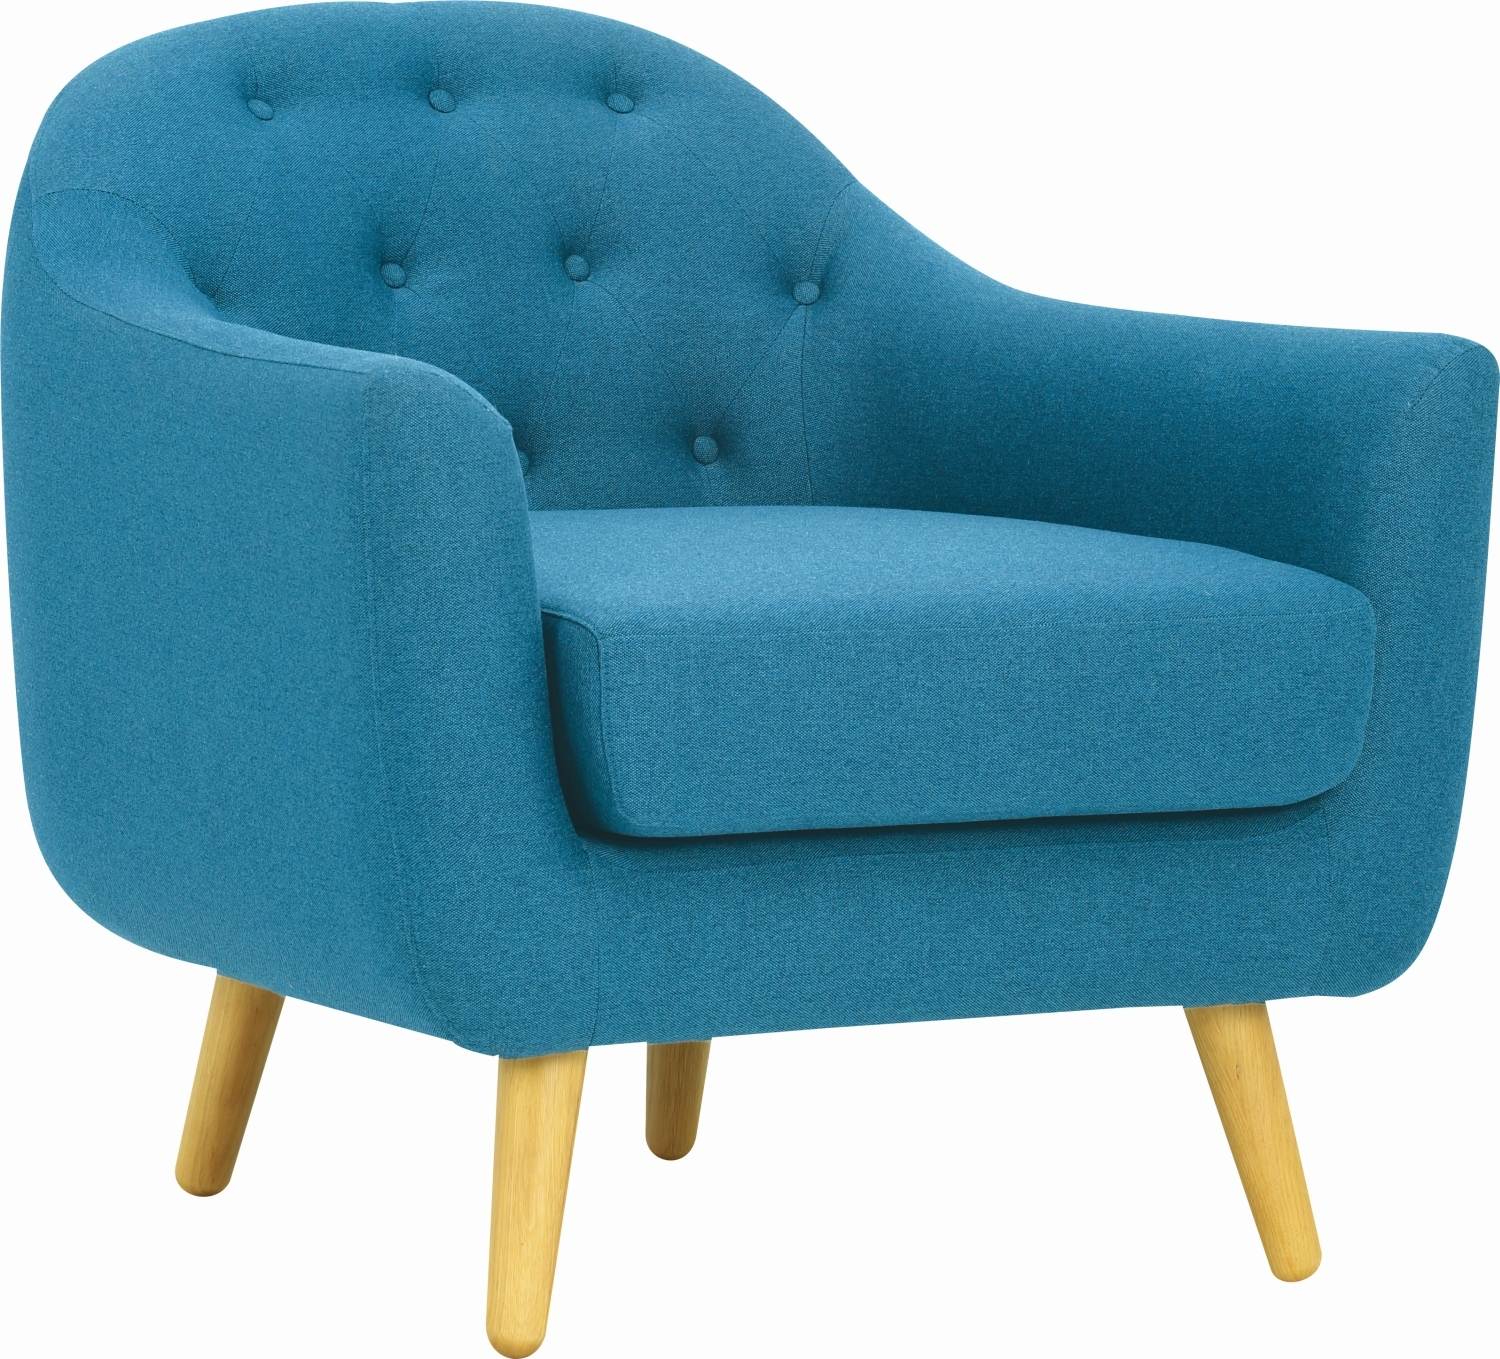 Attrayant SKU #INNA1896 Clary Button Tufted Tub Chair Is Also Sometimes Listed Under  The Following Manufacturer Numbers: 231009, 231010, 231011